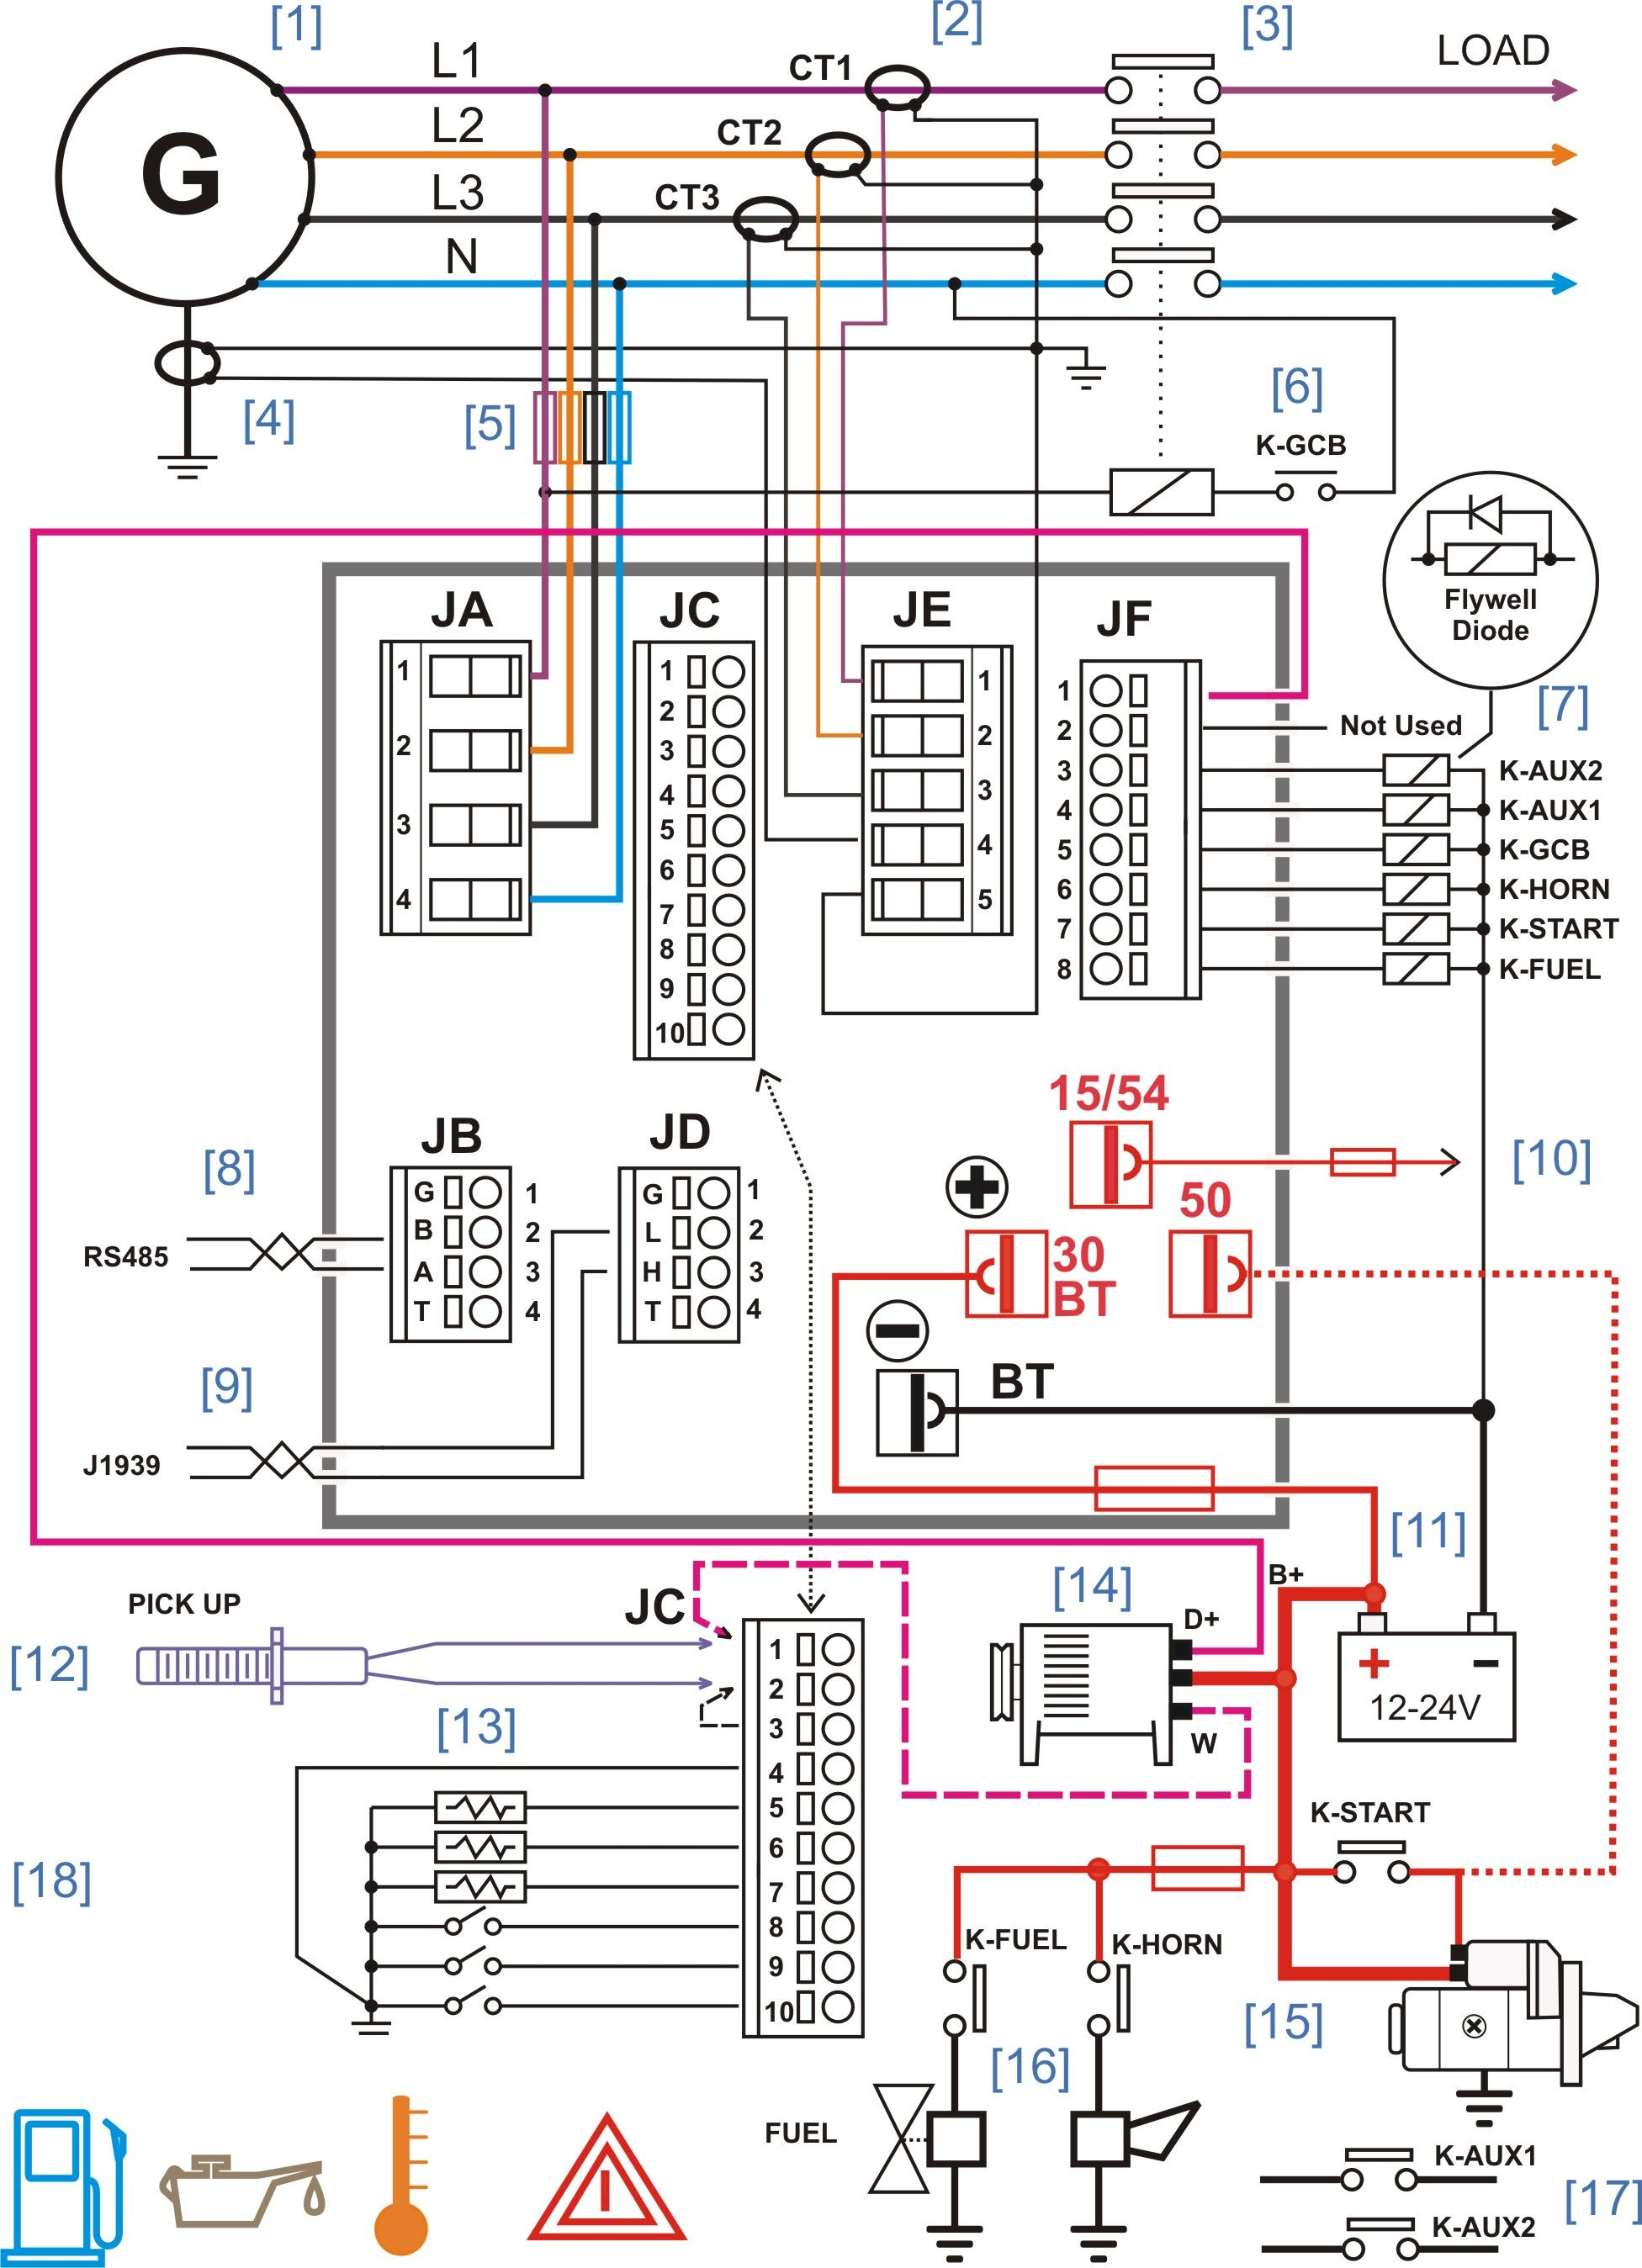 e32695bfa9986573569381a039ba42a6 diesel generator control panel wiring diagram gr pinterest electrical wire diagram software freeware at bakdesigns.co